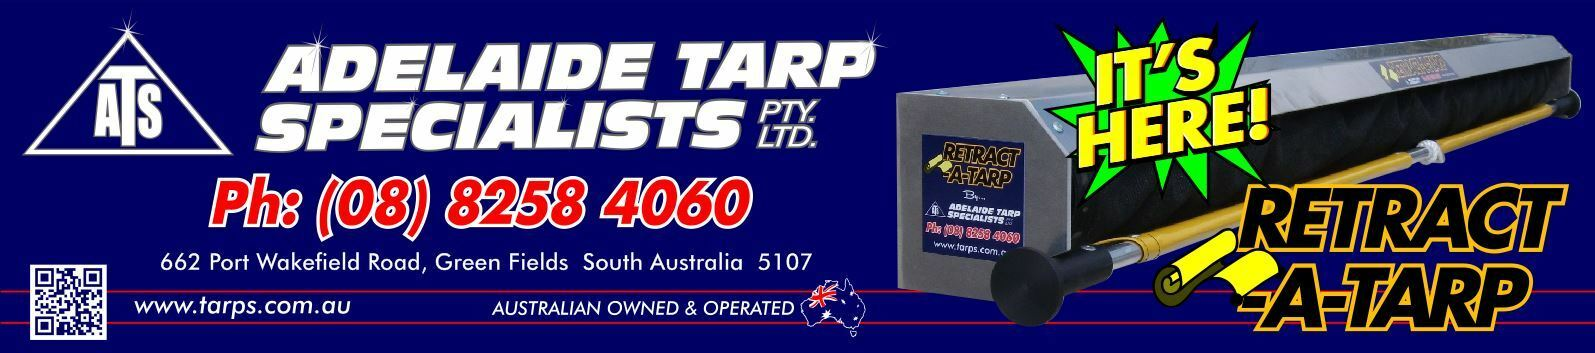 adelaide_tarp_specialists